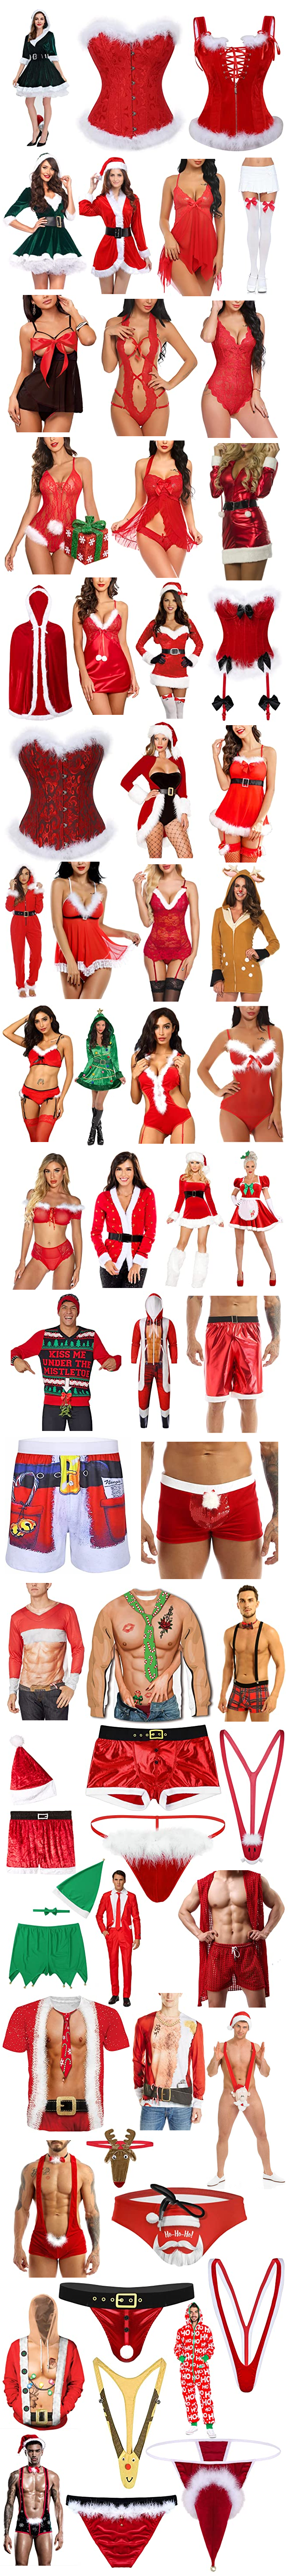 SEXY CHRISTMAS OUTFITS FOR HIM AND HER